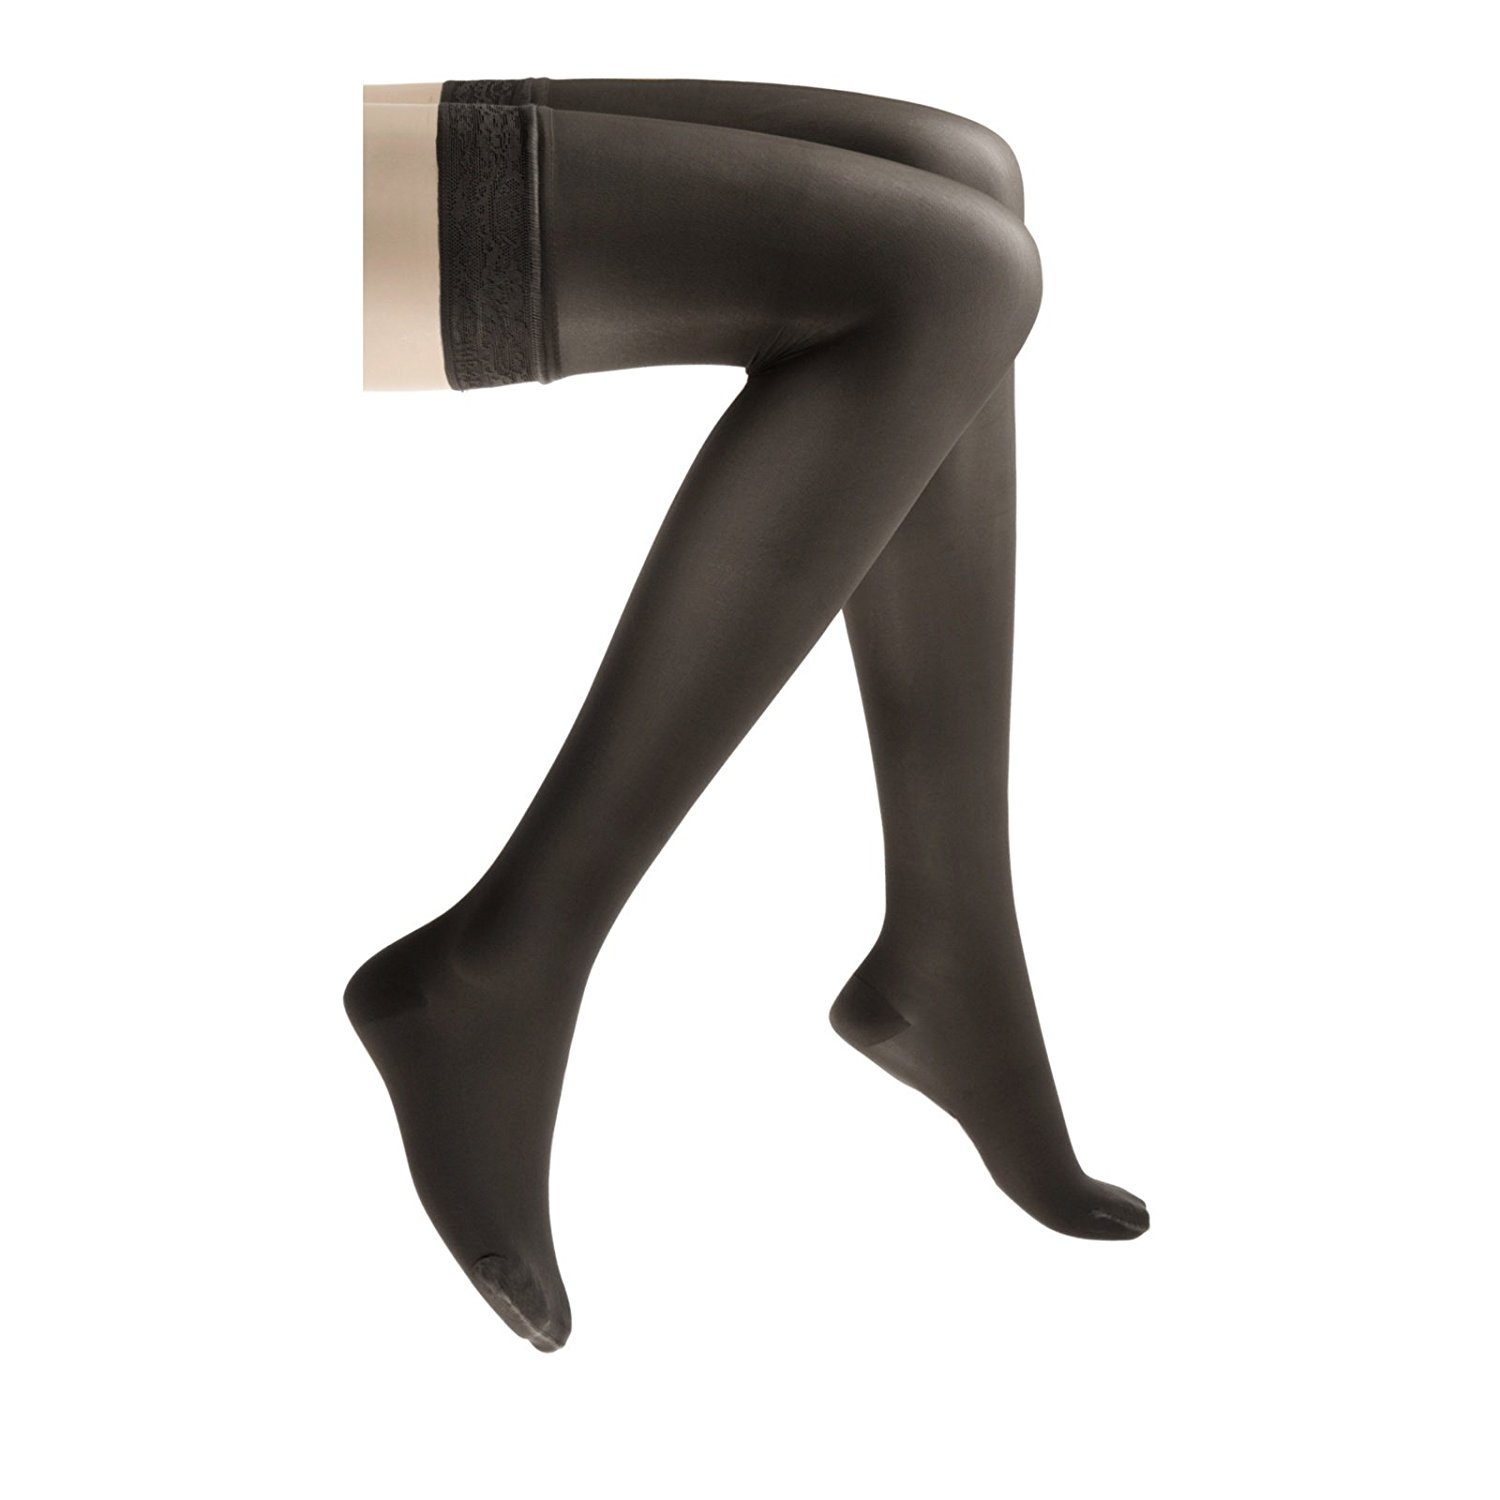 46e1e9fc84 Amazon.com: JOBST UltraSheer Thigh High with Lace Silicone Top Band, 20-30  mmHg Compression Stockings, Closed Toe, Small Petite, Classic Black: Health  ...